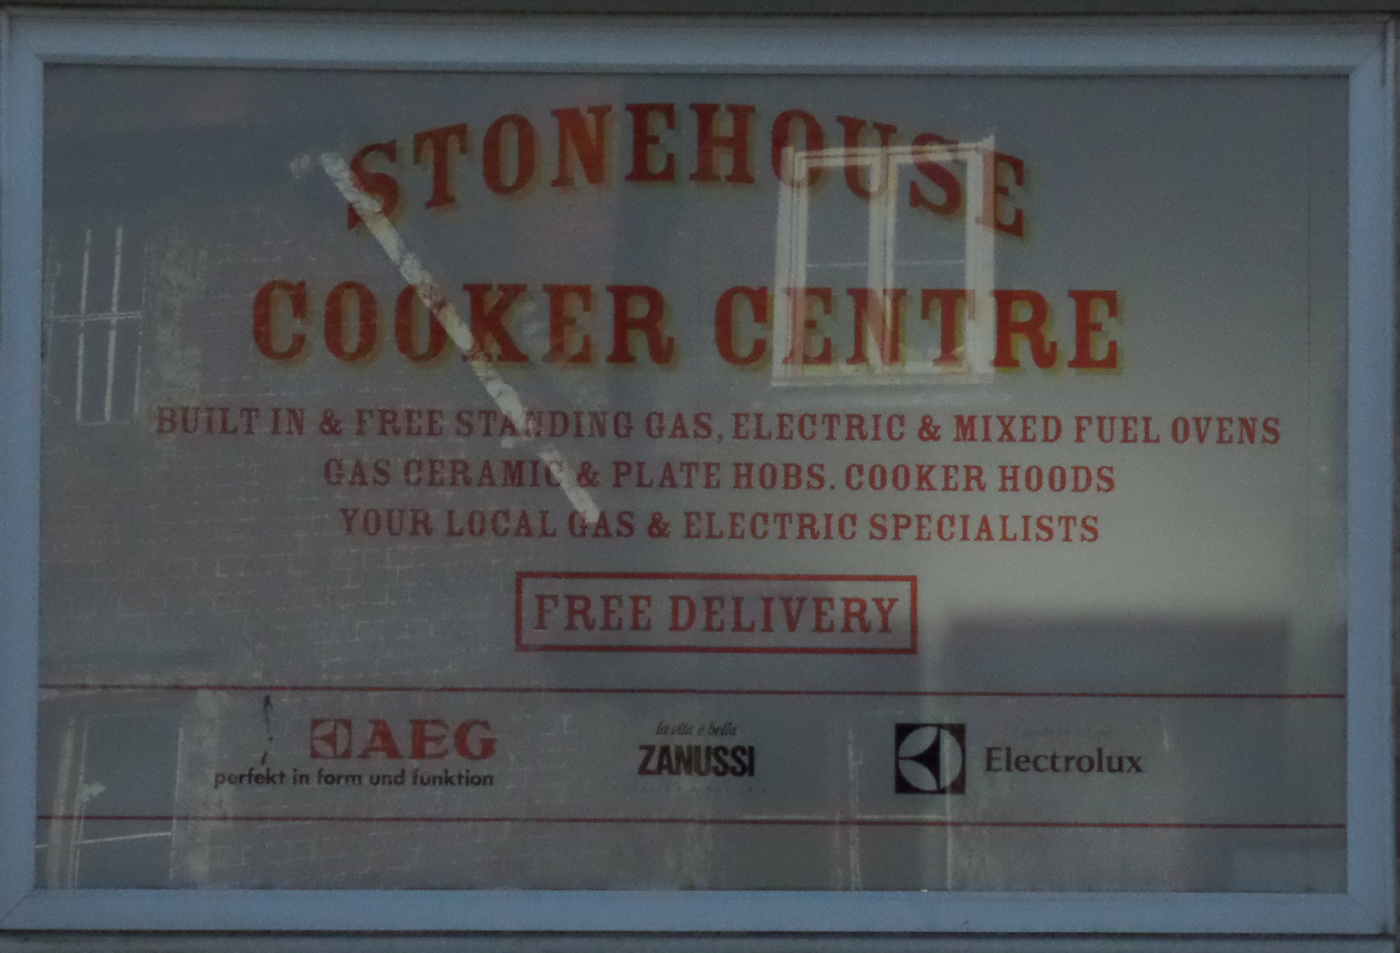 Stonehouse Cooker Centre (cookers)